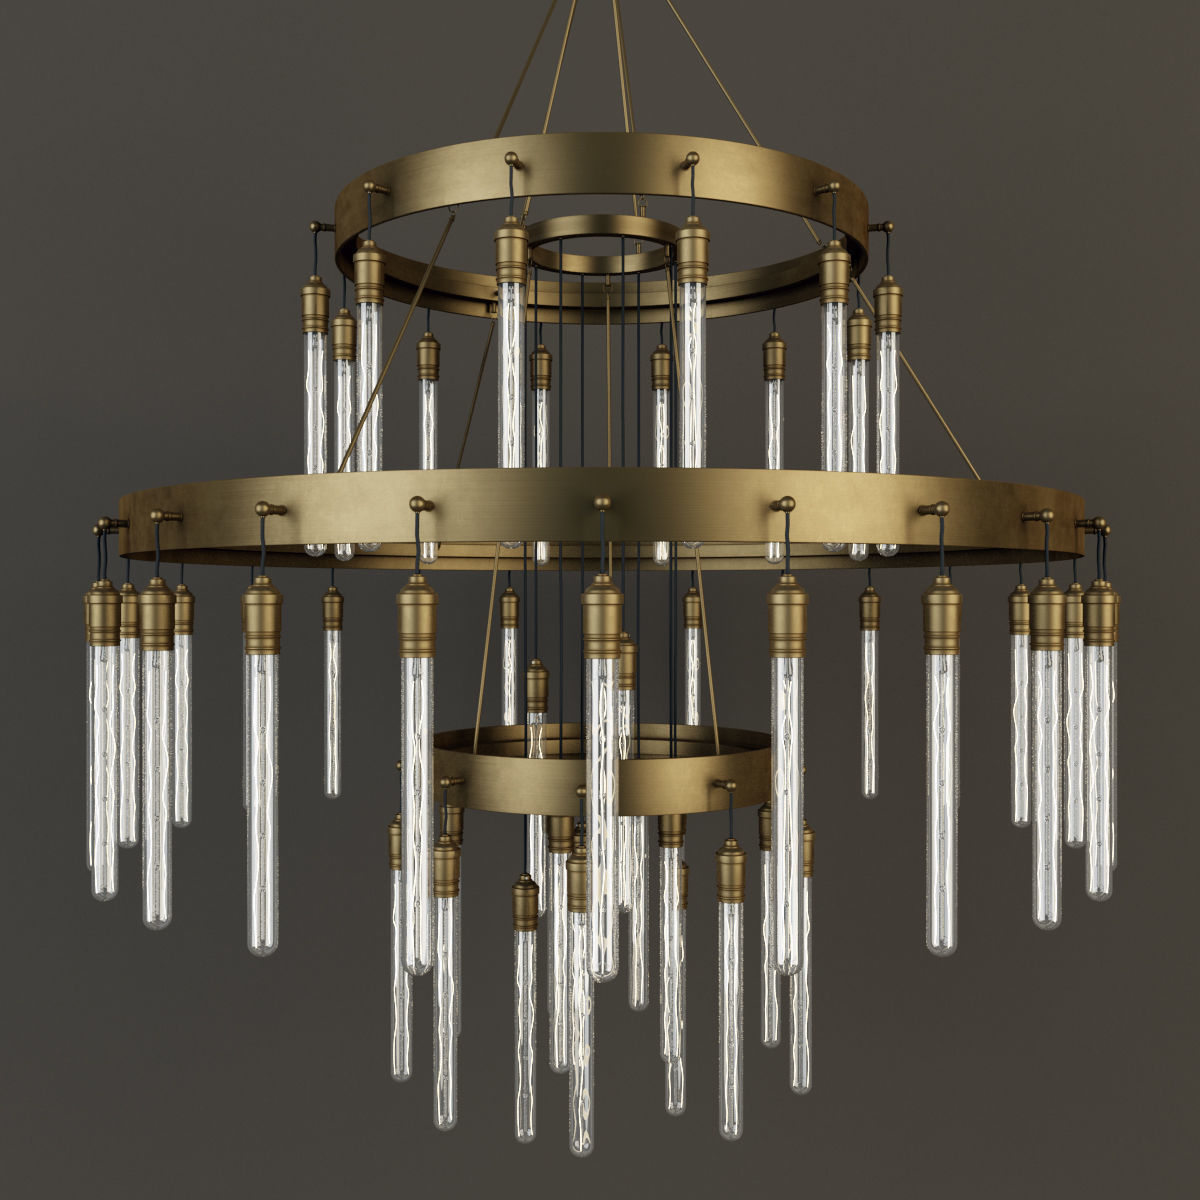 Rh axis three tier chandelier 3d cgtrader rh axis three tier chandelier 3d model max obj 1 mozeypictures Images